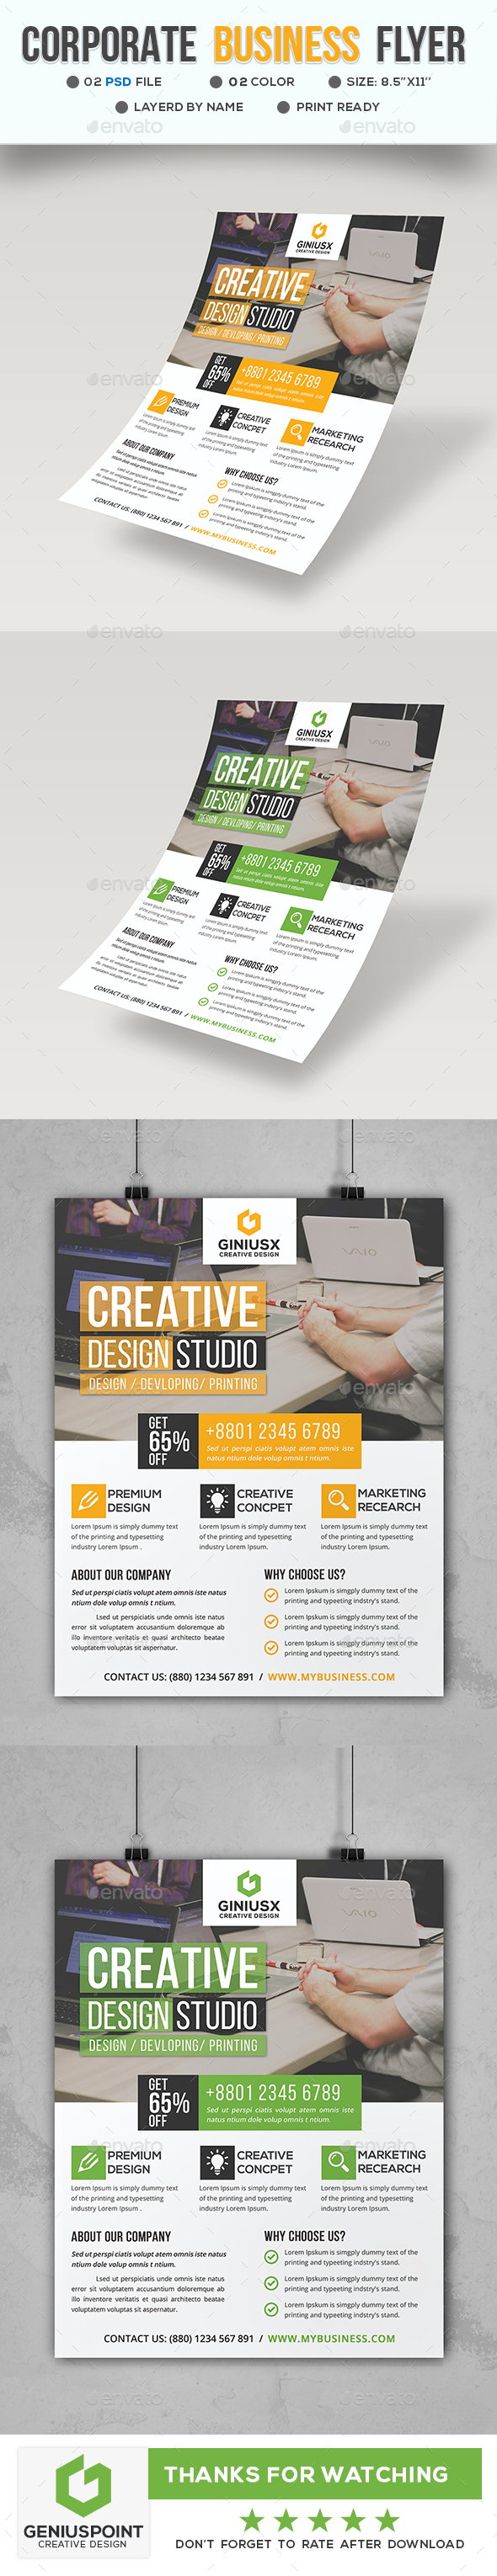 GraphicRiver Corporate Business Flyer 21144840